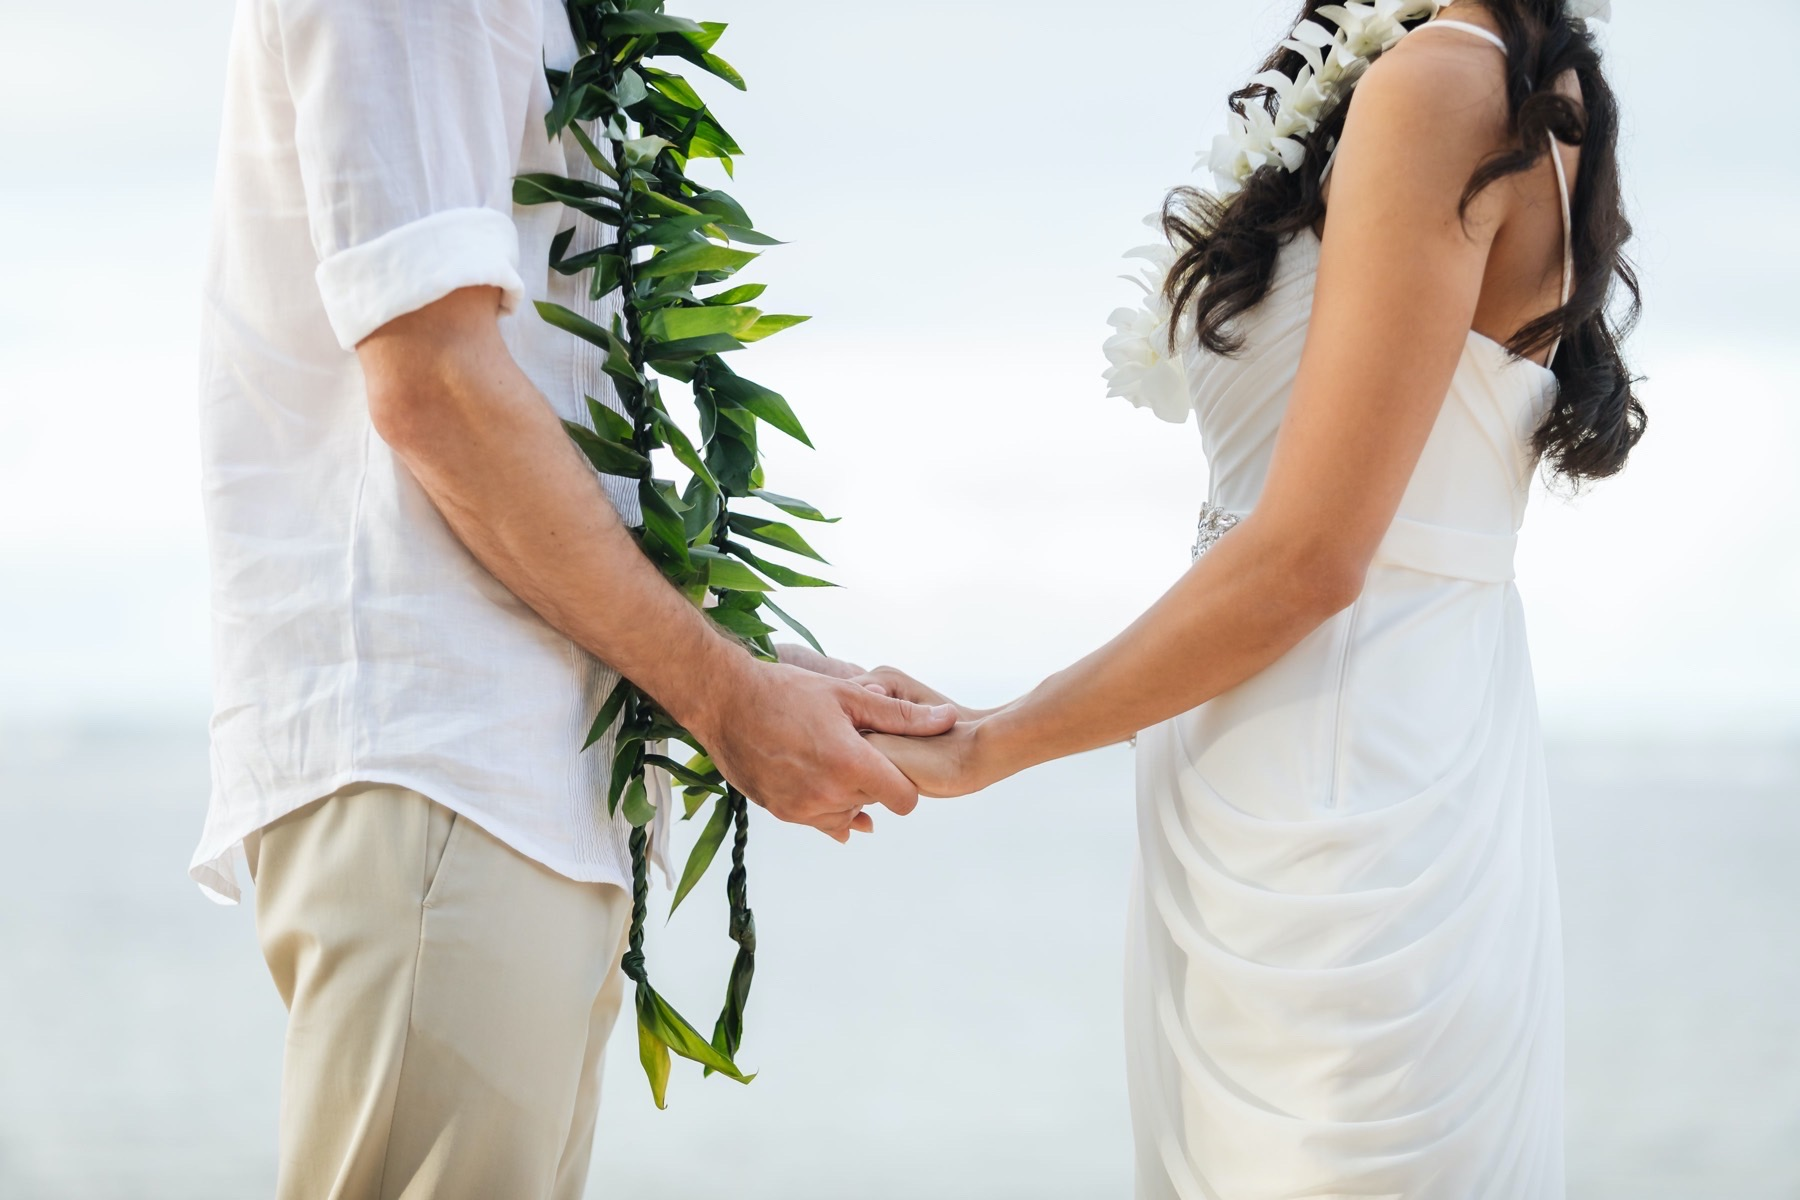 Man and Woman holding hands wearing Leis.